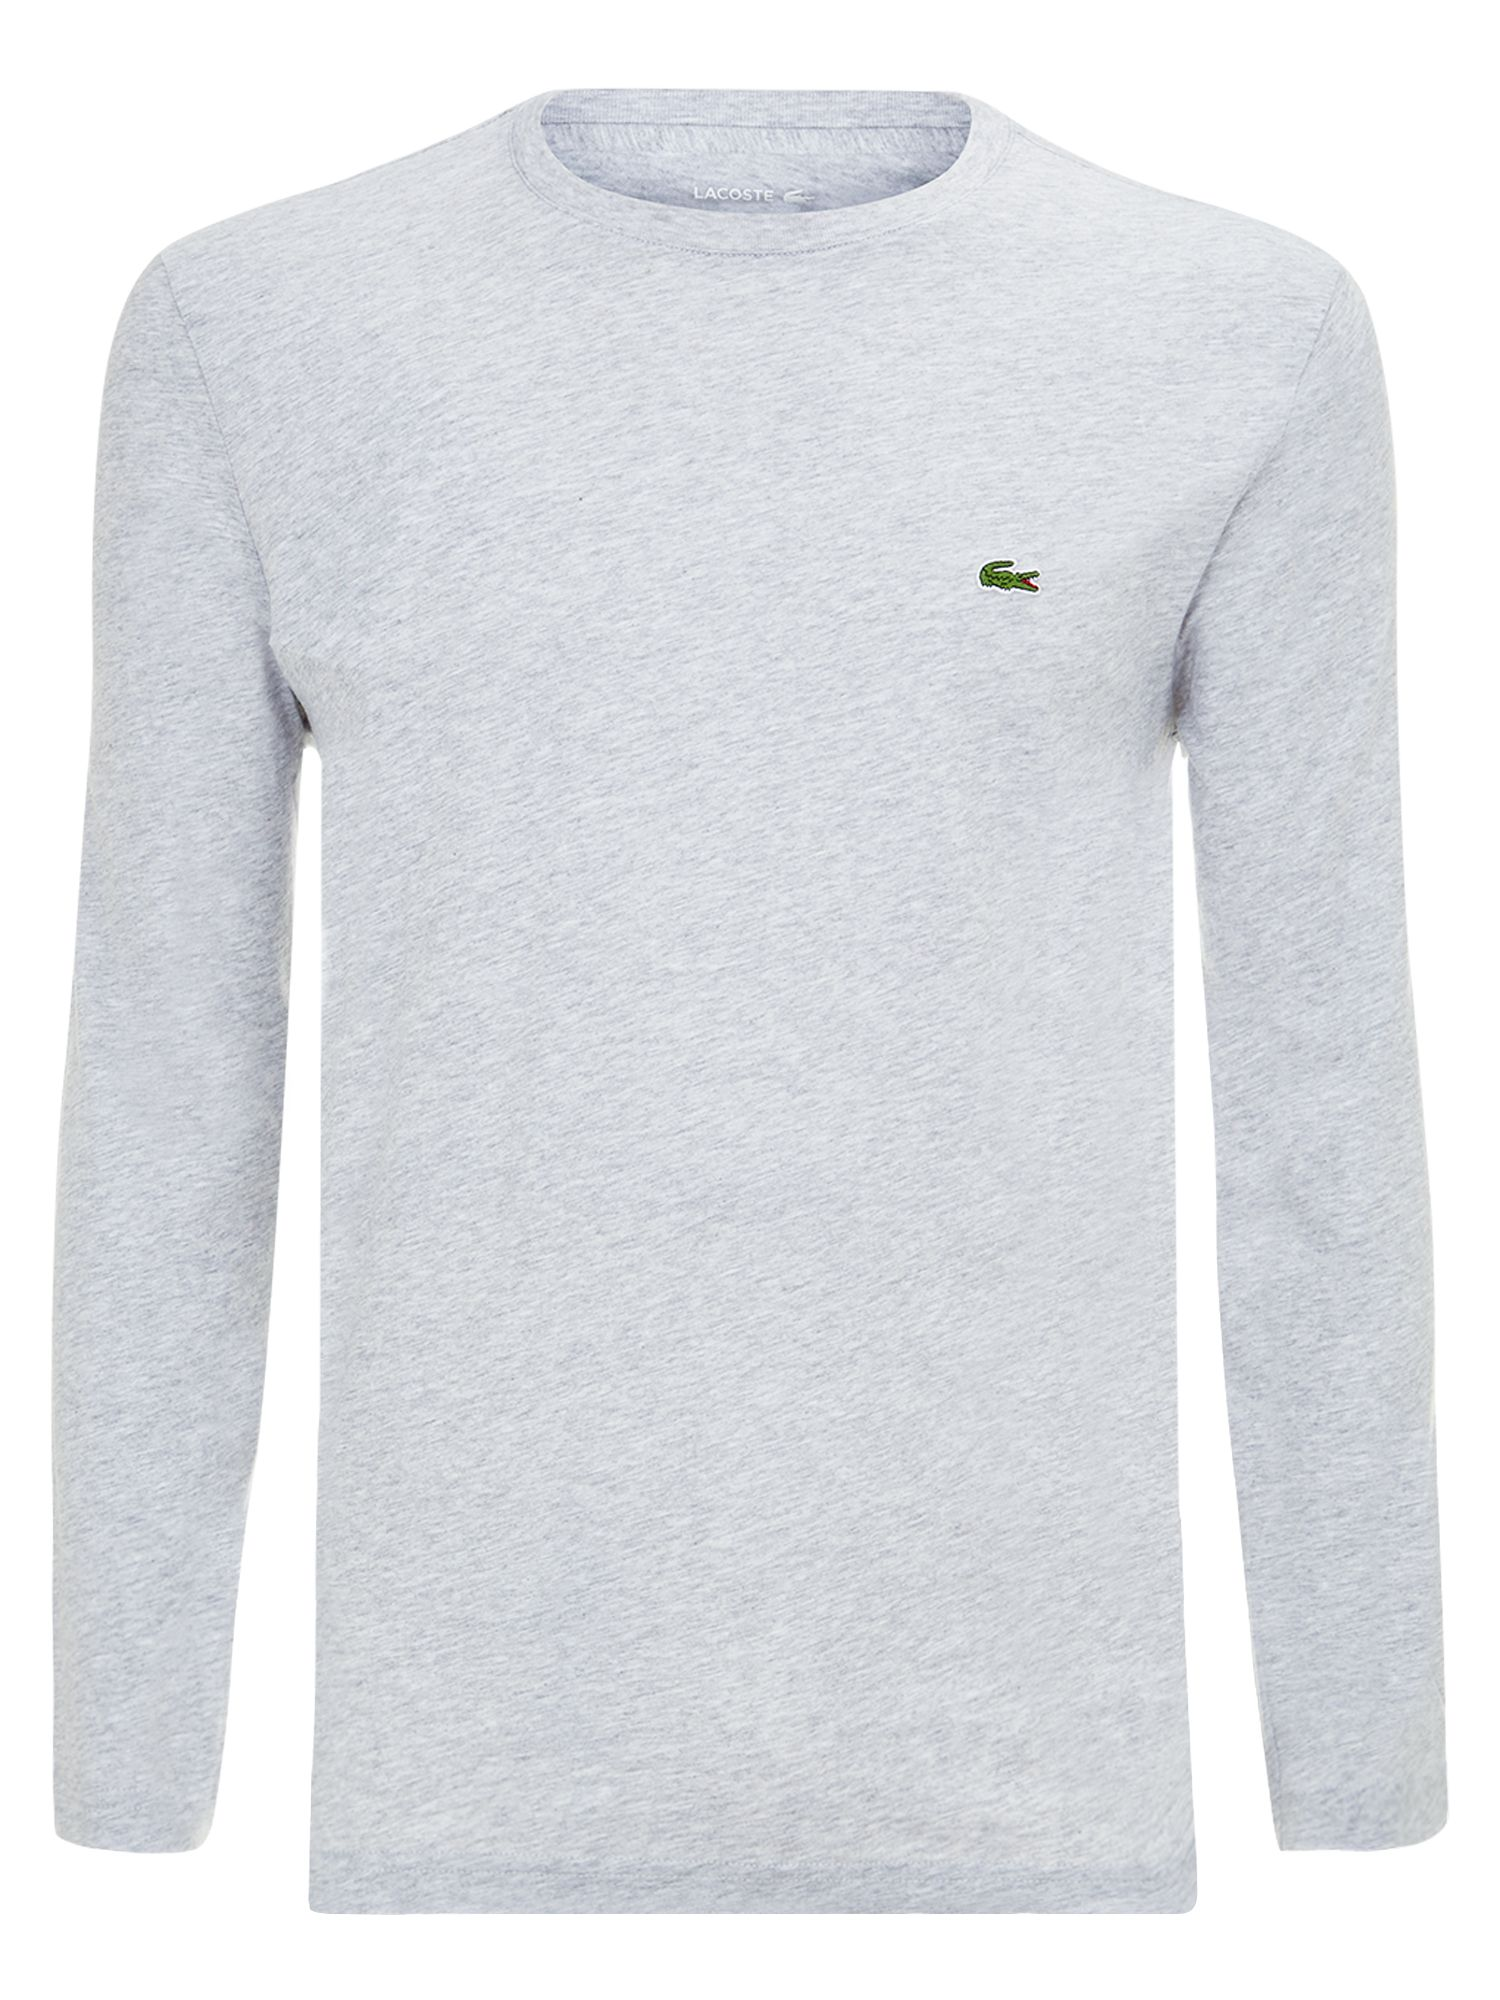 Men's Lacoste Long sleeved t-shirt, Grey